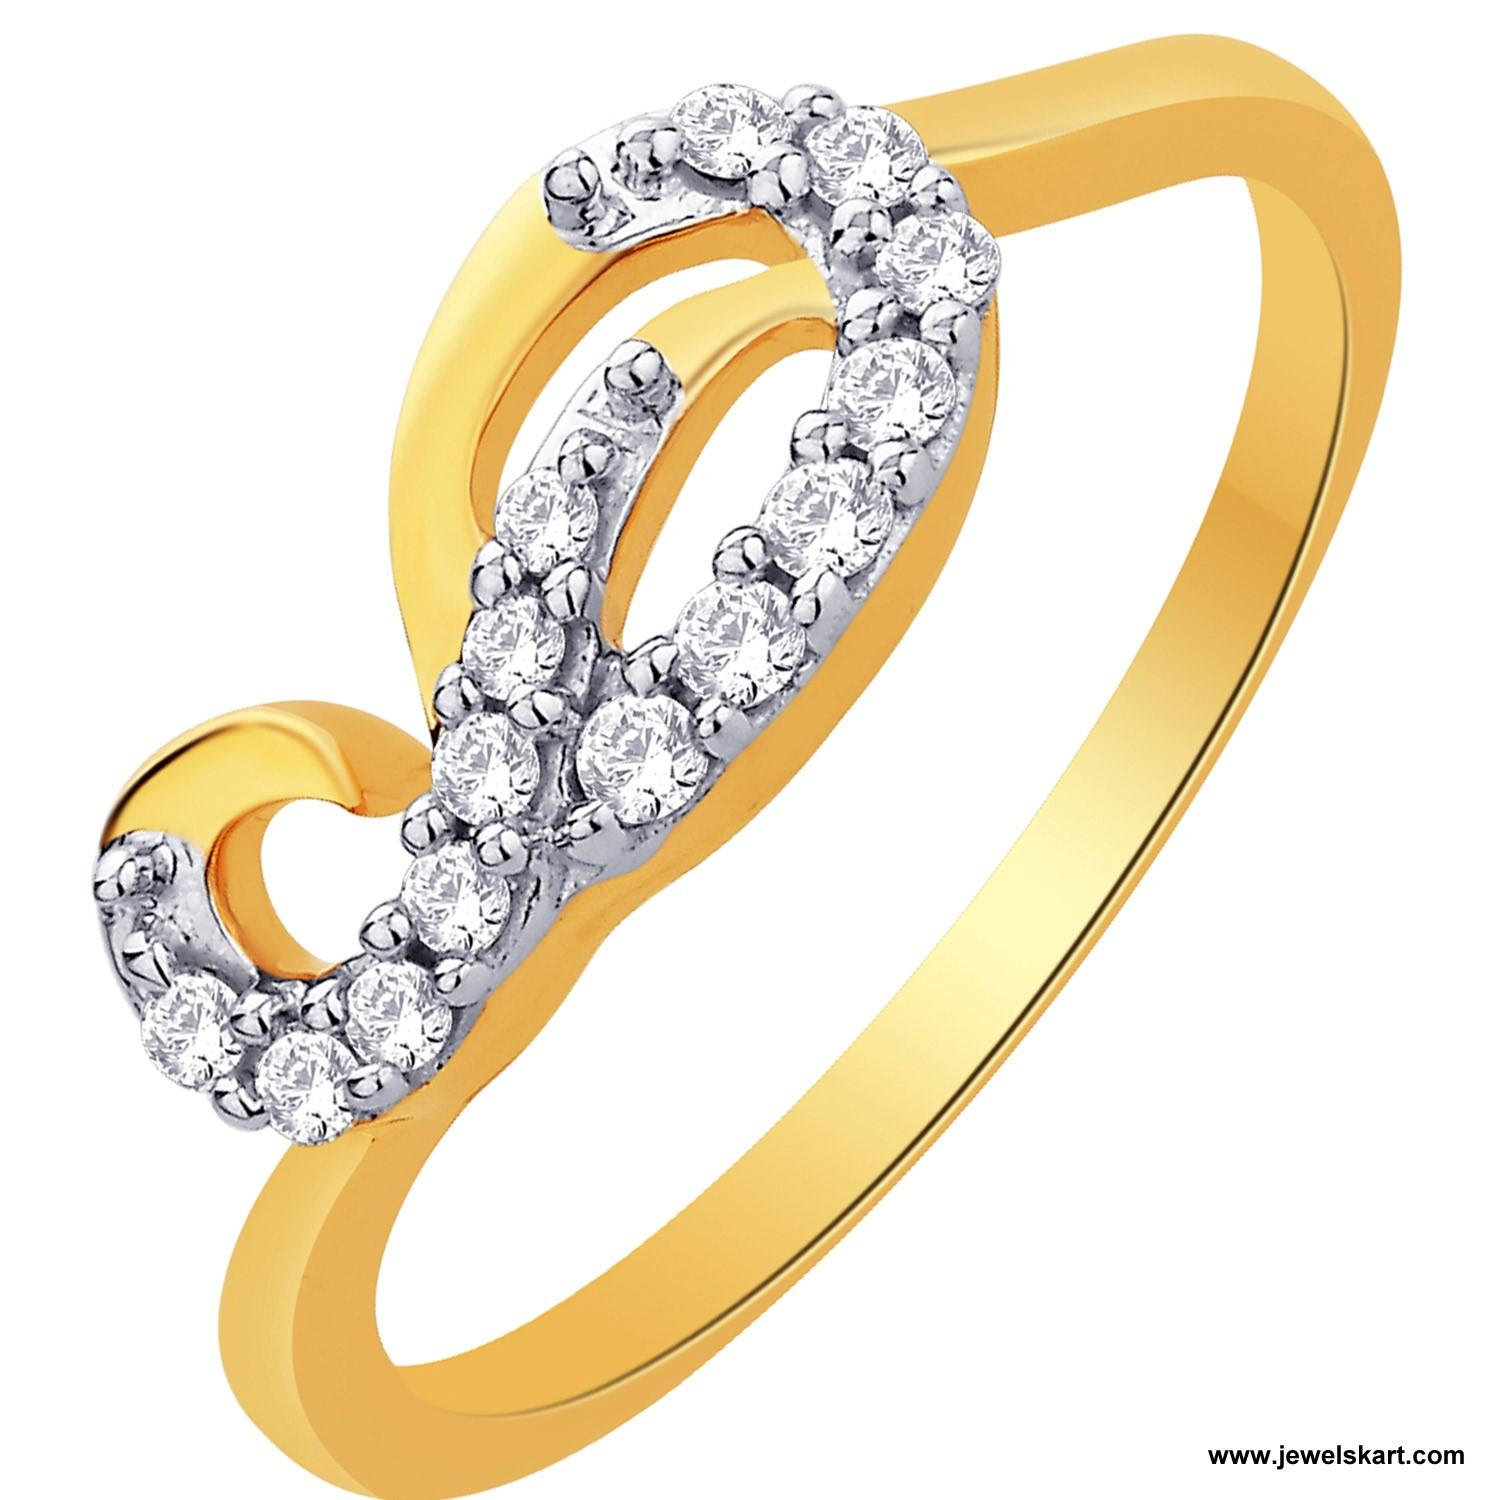 Sangini IDR00676 Gold, 4.68 gm, 0.17 ct, Diamond, Ladies Ring